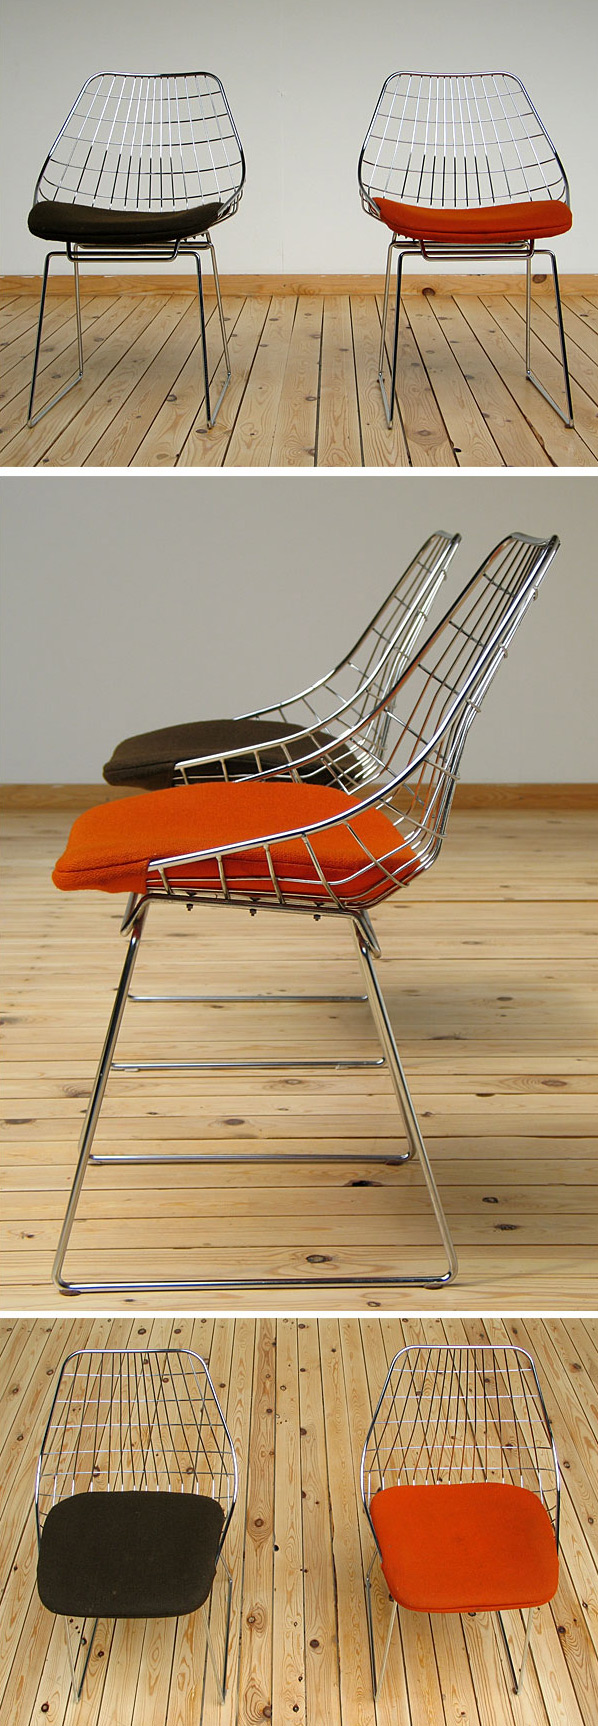 Cees Braakman UMS-Pastoe 2 chrome wire chairs 1958 Large